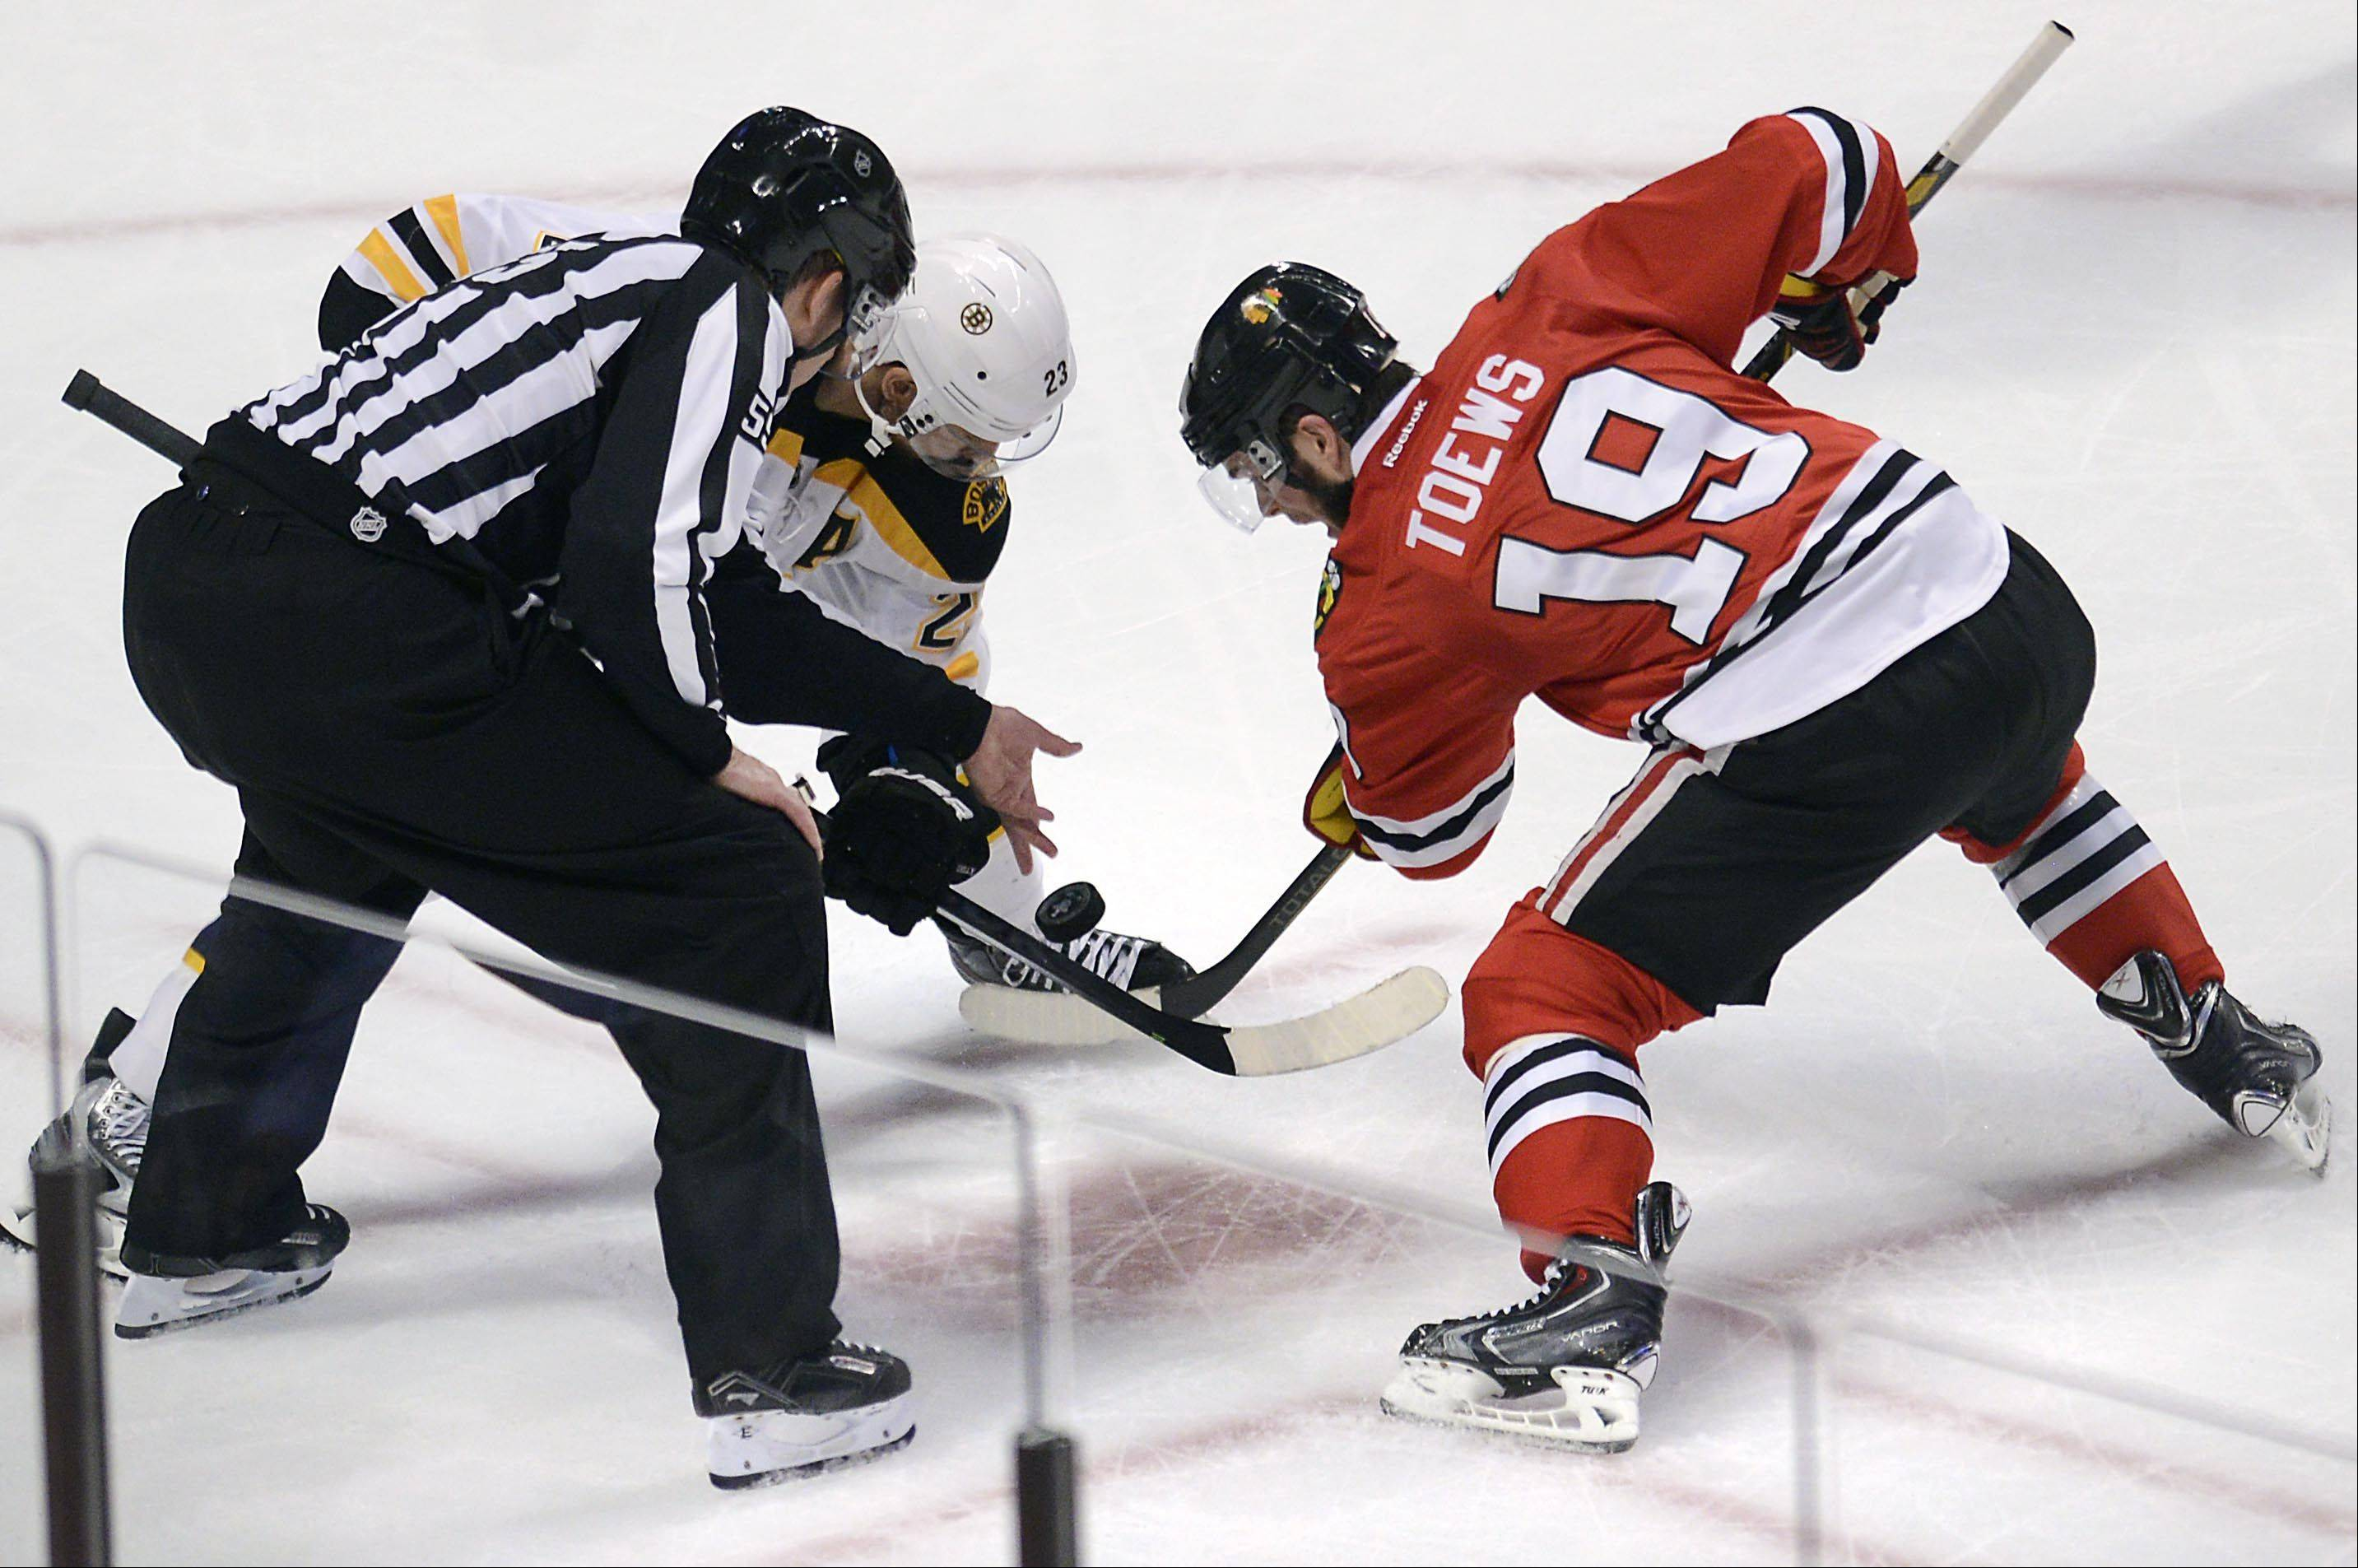 Linesman Shane Heyer drops the puck for a faceoff between Blackhawks center Jonathan Toews and Boston Bruins center Chris Kelly during Game 1 of the Stanley Cup Finals on Wednesday at the United Center in Chicago.